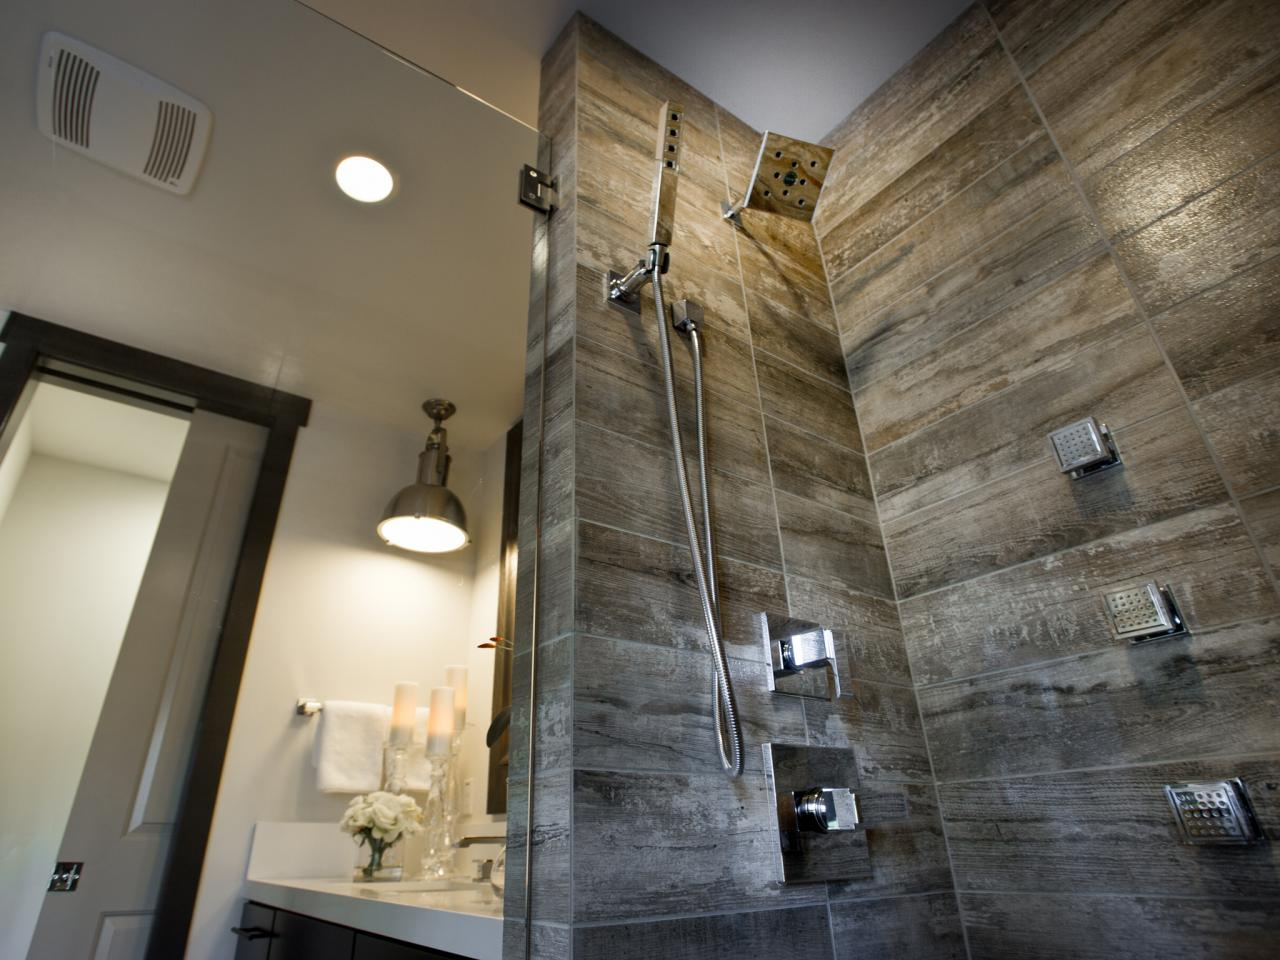 Trendy bathrooms Photo   14. Trendy bathrooms Photo   14   Design your home